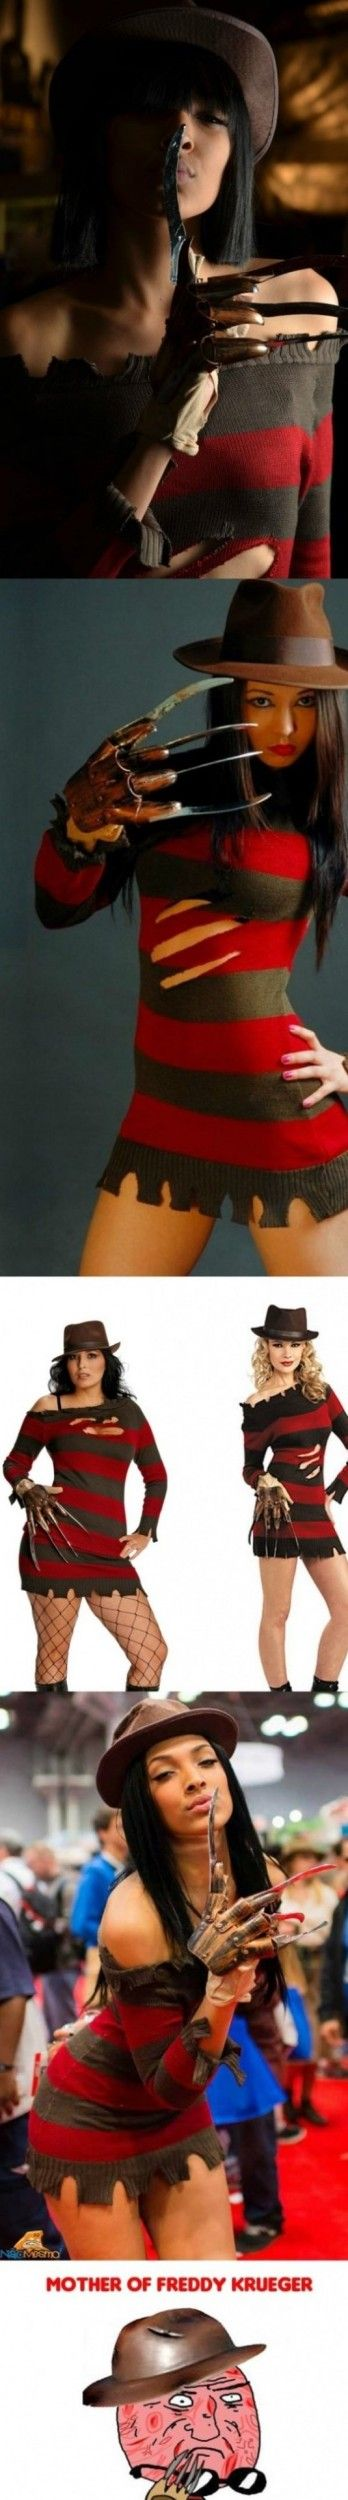 Happy halloween - freddy krueger girls - http://www.jokideo.com/happy-halloween-freddy-krueger-girls/